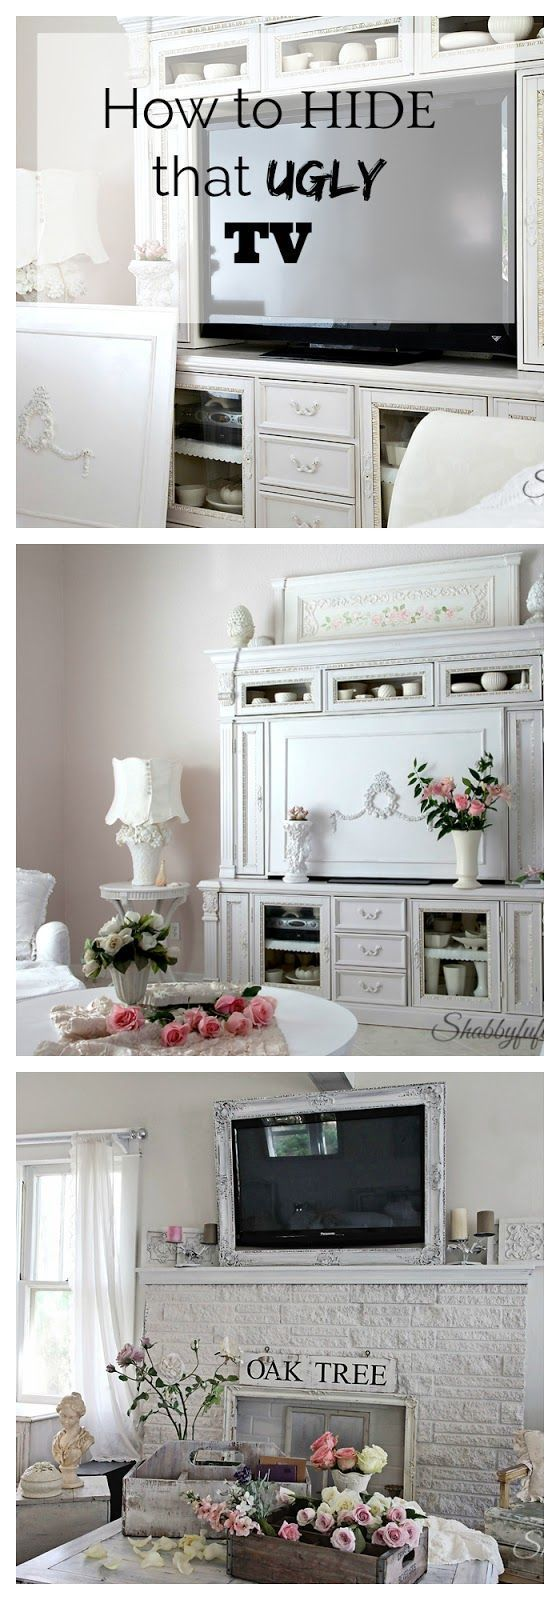 How To Hide That Ugly TV!   television cabinet I tv cabinet I frame a tv I customize a tv cabinet